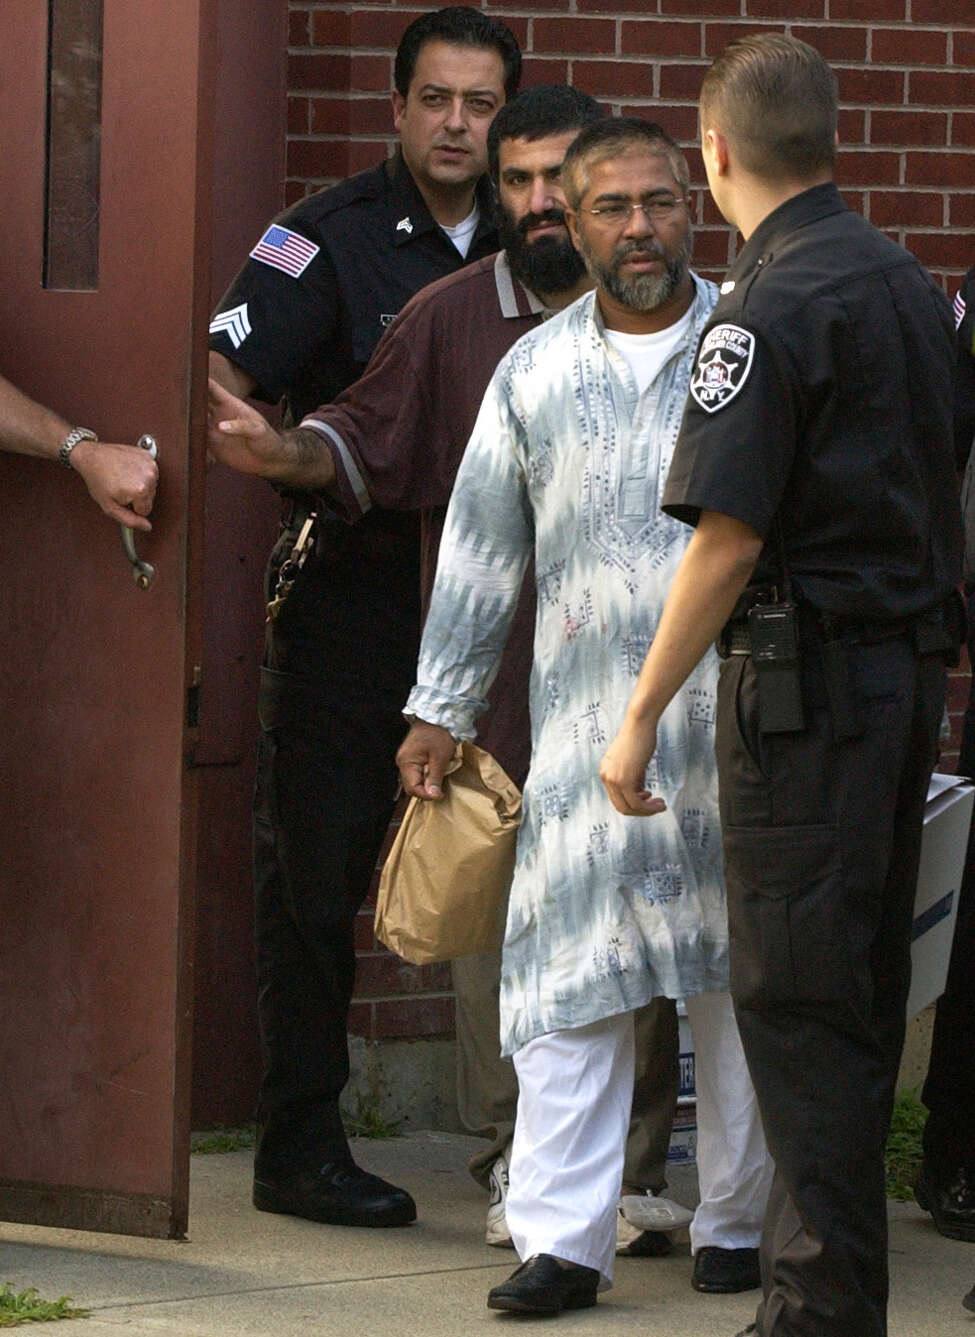 Yassin Muhiddin Aref, left, and Mohammed Mosharref Hossain, right, are released on bail from the Rensselaer County Jail, Wednesday, August 25, 2004. The FBI charged the two Muslim men from Albany with participation in a fictitious terror plot. (Will Waldron/Times Union archive)